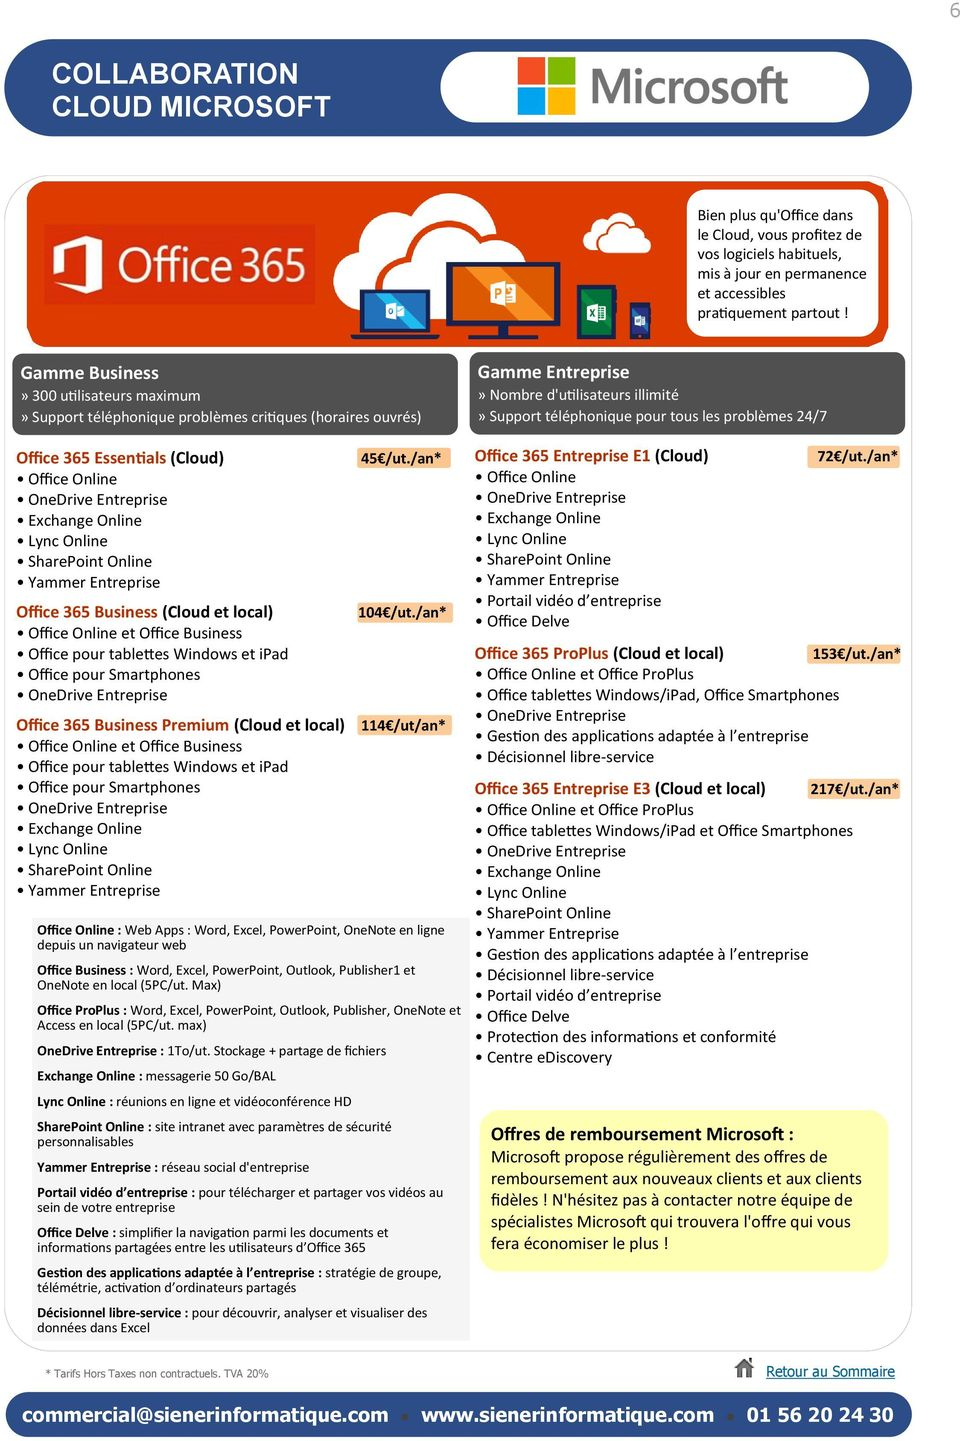 Entreprise Office 365 Business (Cloud et local) Office Online et Office Business Office pour tablettes Windows et ipad Office pour Smartphones Office 365 Business Premium (Cloud et local) Office